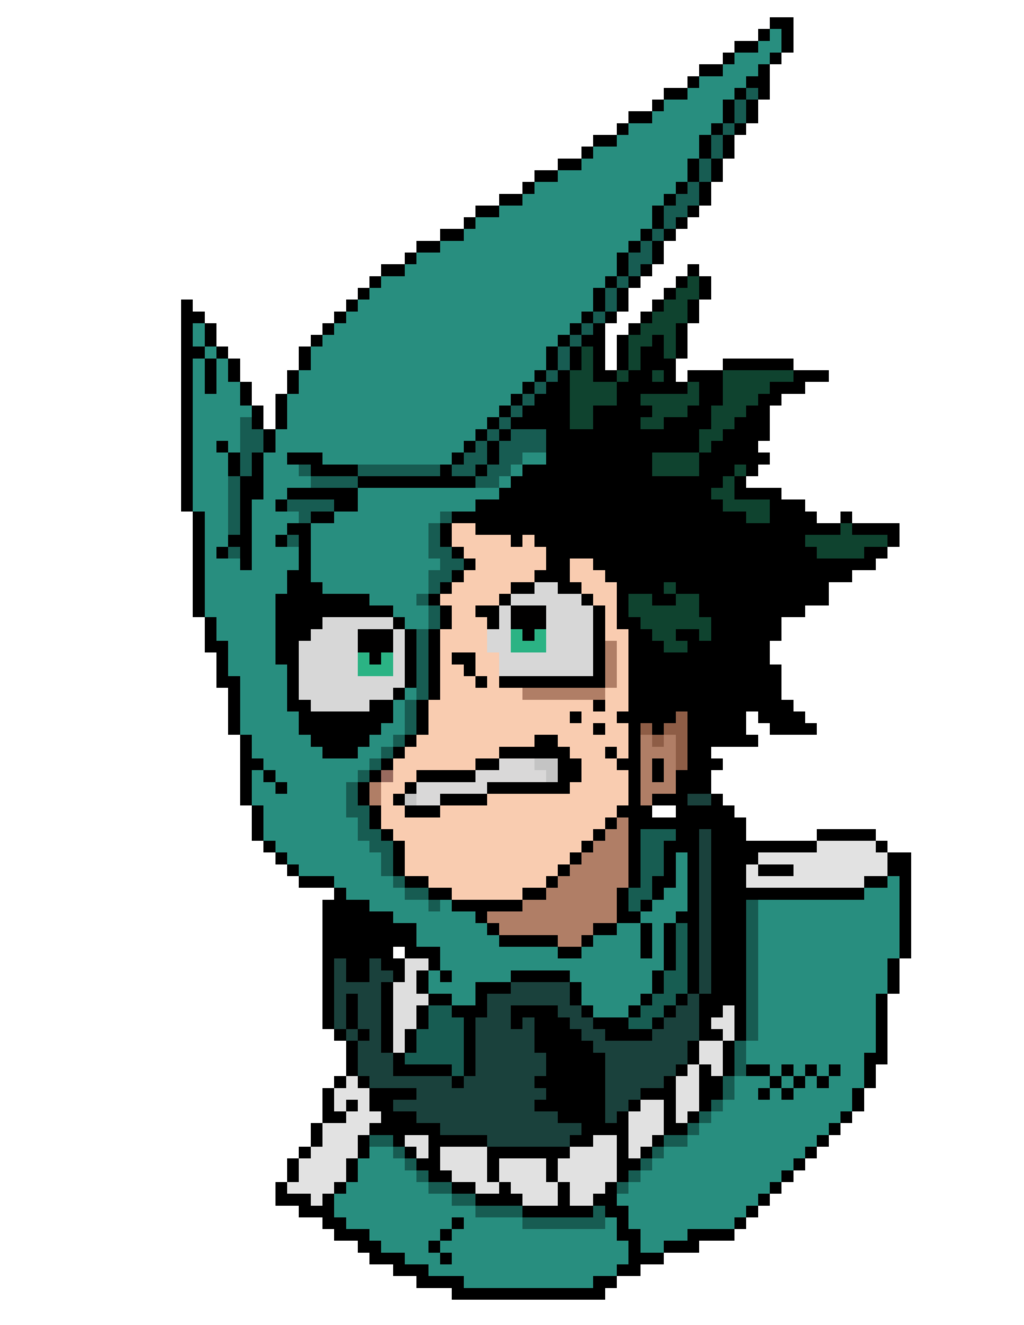 Izuku Midoriya Pixel Art My Hero Academia By Nezz94 Pixel Art Anime Pixel Art Pixel Art Grid If you're interested in learning how to make pixel art games using techniques like pixel art color by number, udemy has a course to help you develop 2d video games like a pro. izuku midoriya pixel art my hero